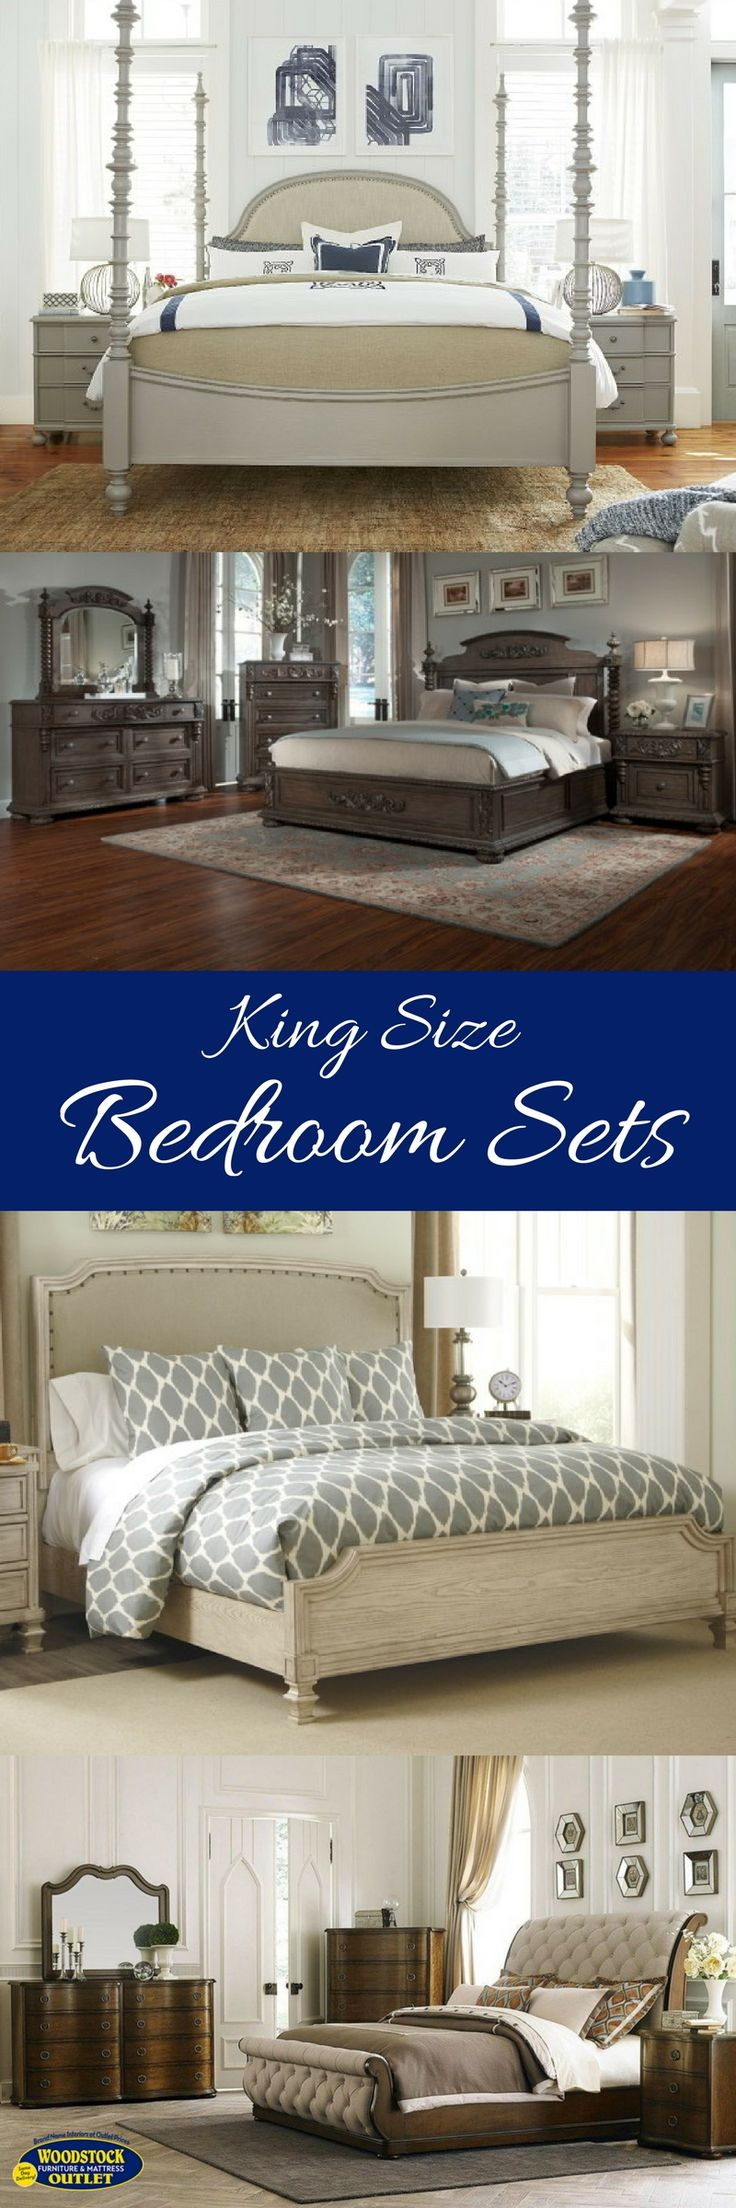 Elegant wood modern master bedroom set feat wood grain cincinnati ohio - King Size Bedroom Sets From Woodstock Furniture Mattress Outlet In Atlanta Ga